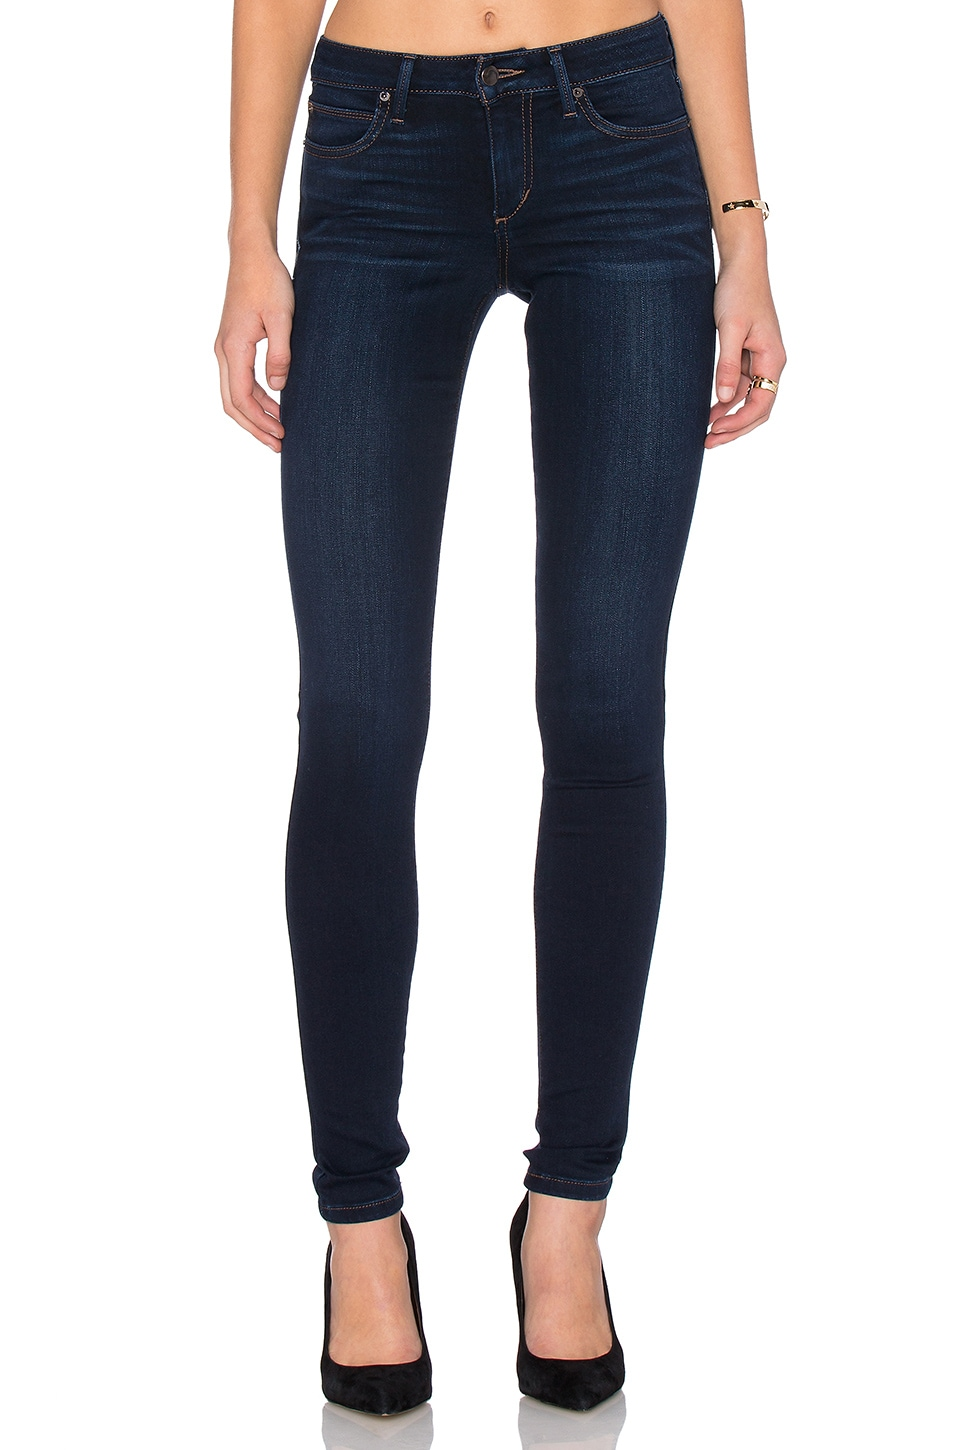 Joe's Jeans Lexi Flawless The Honey Skinny in Medium Blue